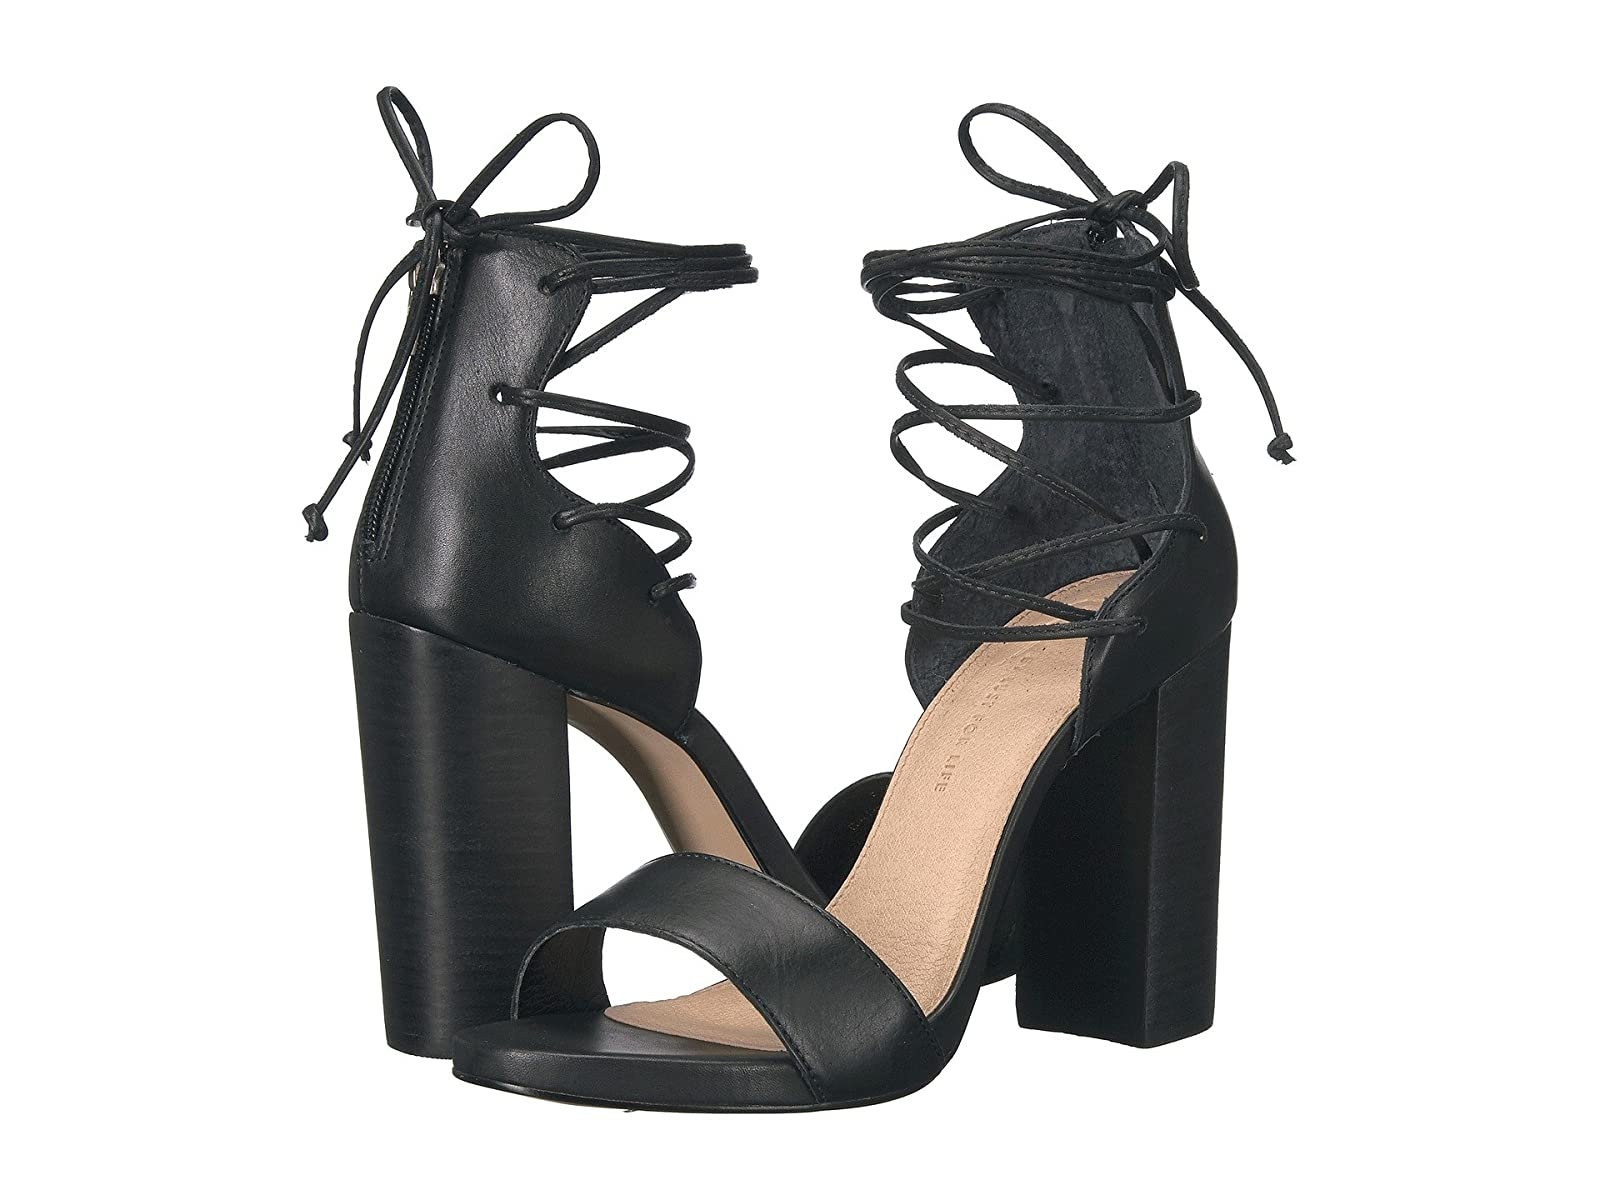 LFL by Lust For Life GazeCheap and distinctive eye-catching shoes